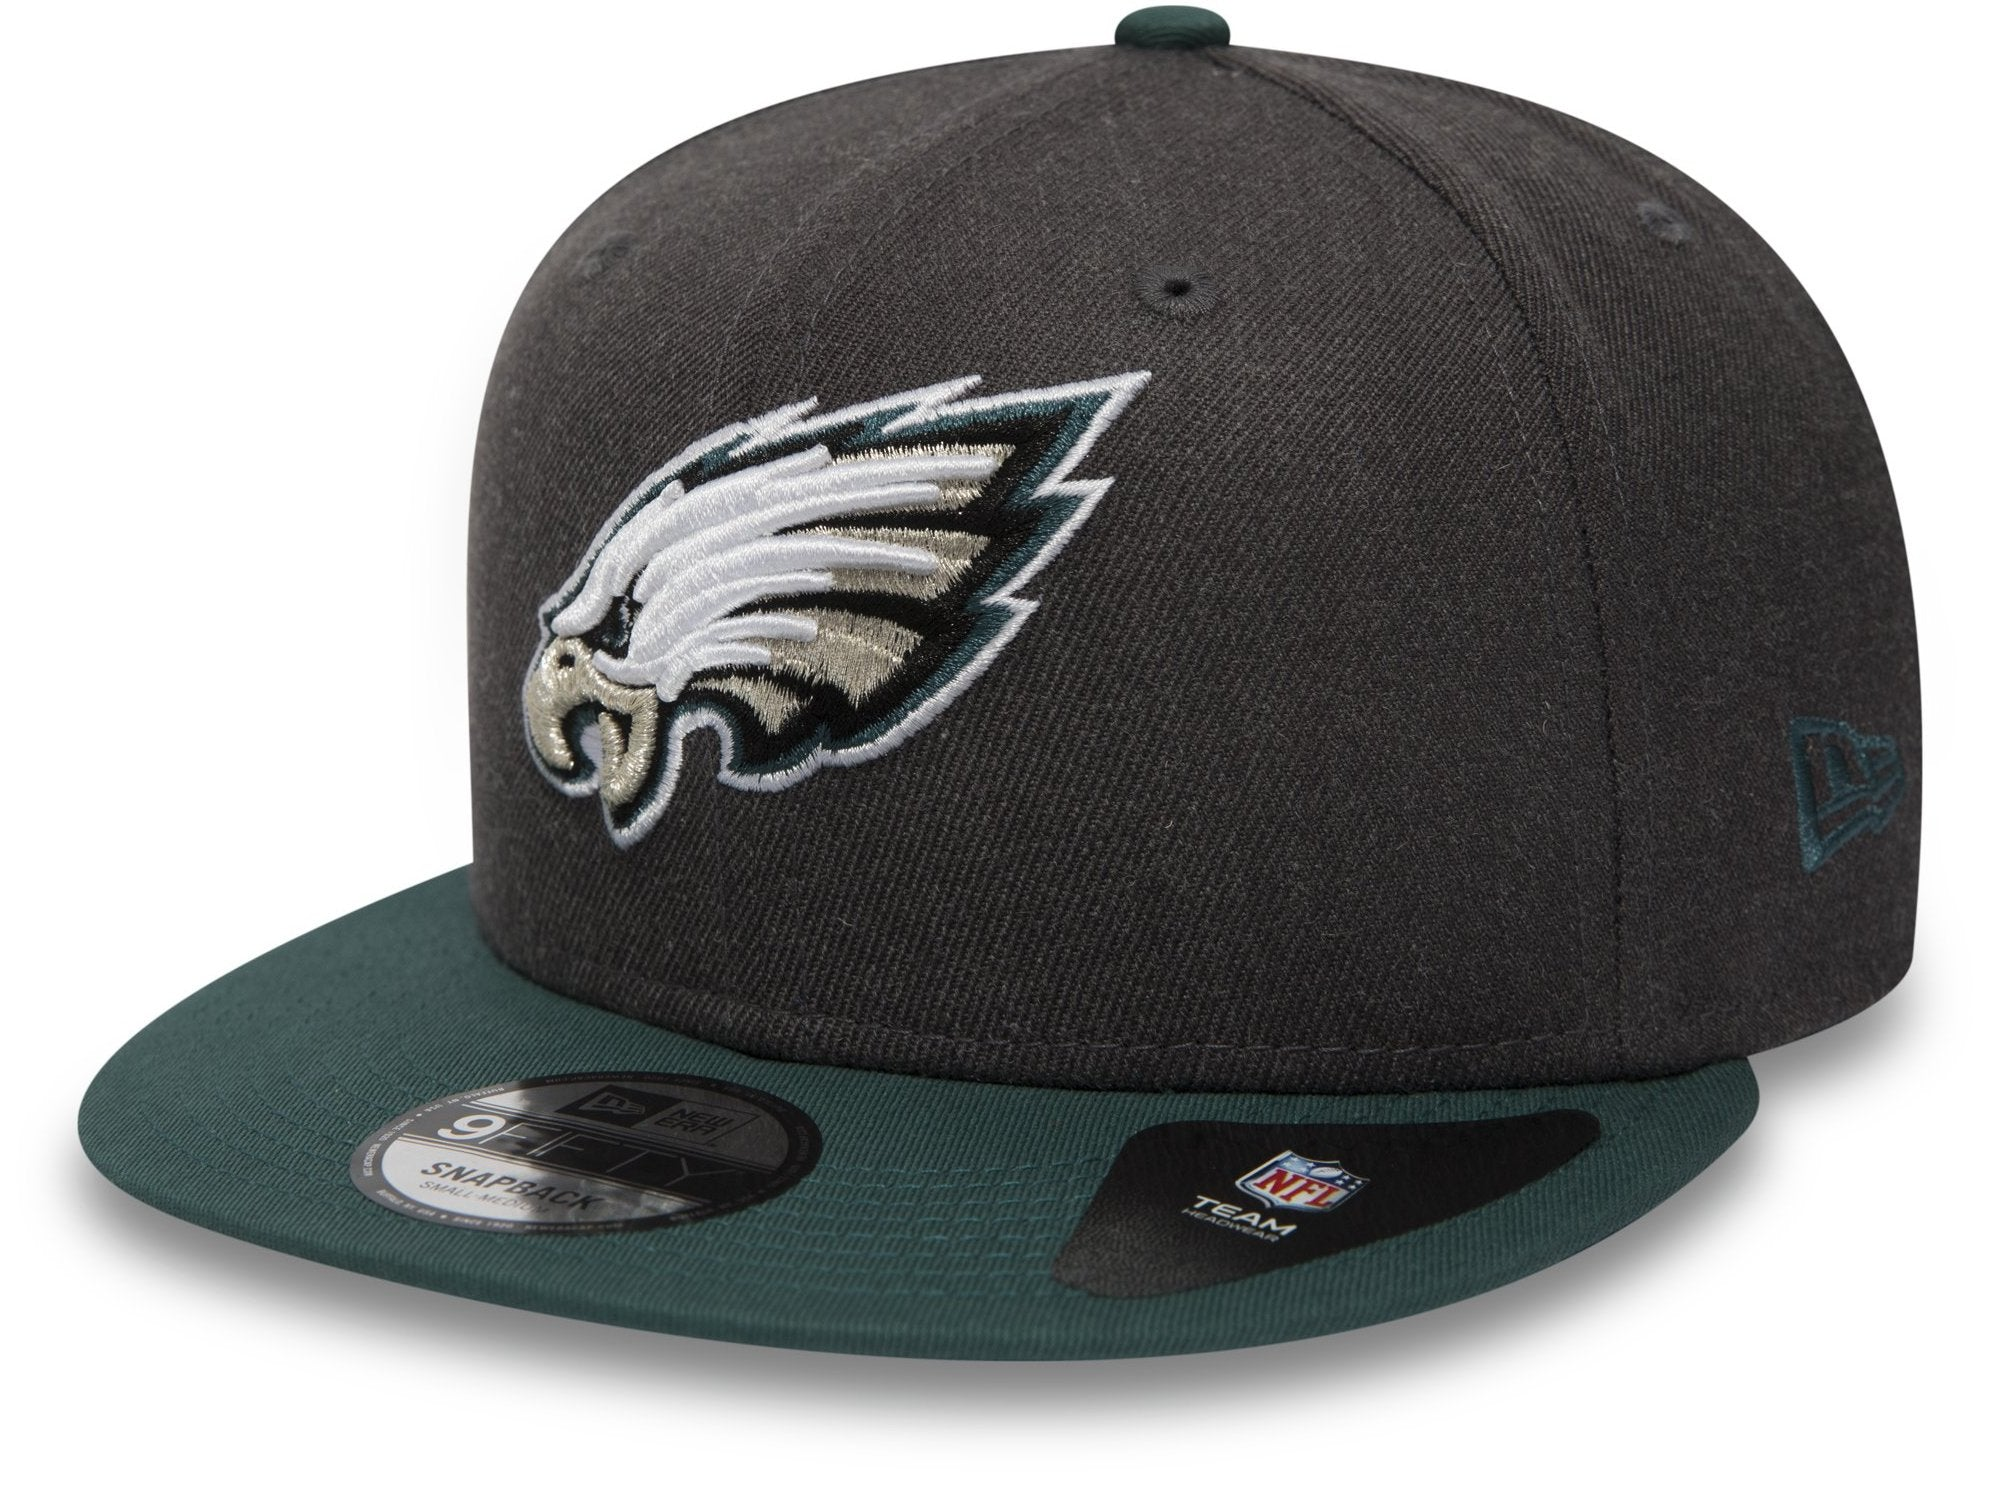 1ac22299fbb235 Philadelphia Eagles New Era 950 NFL Heather Snapback Cap + Gift Box –  lovemycap